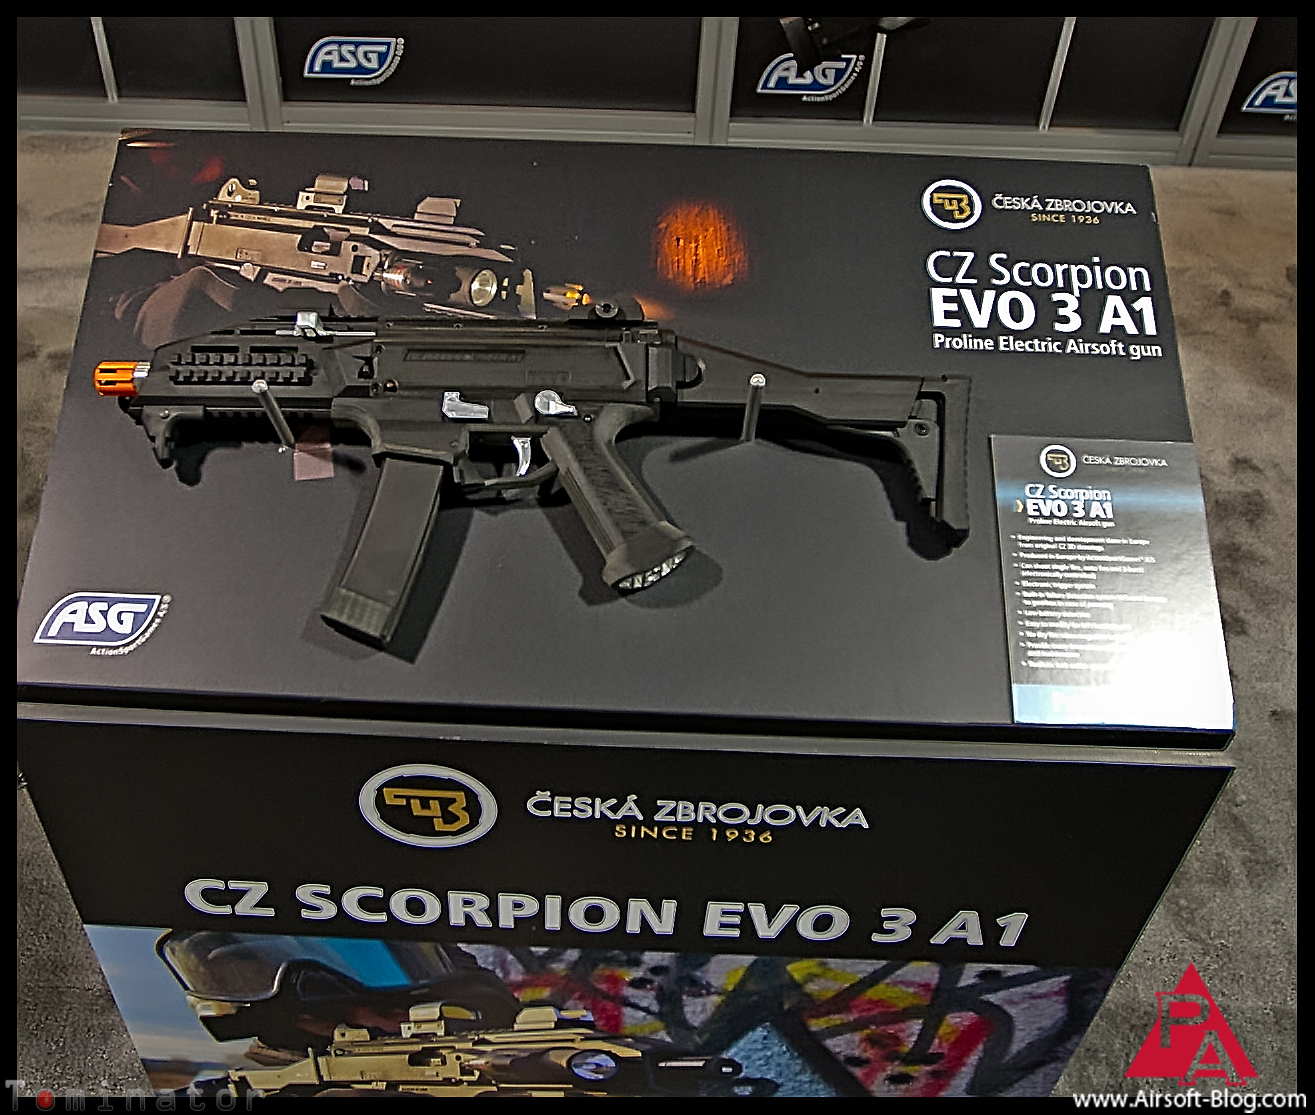 Pyramyd Airsoft Blog: Shot Show 2012 - ASG CZ Scorpion Evo 3 A1 ...